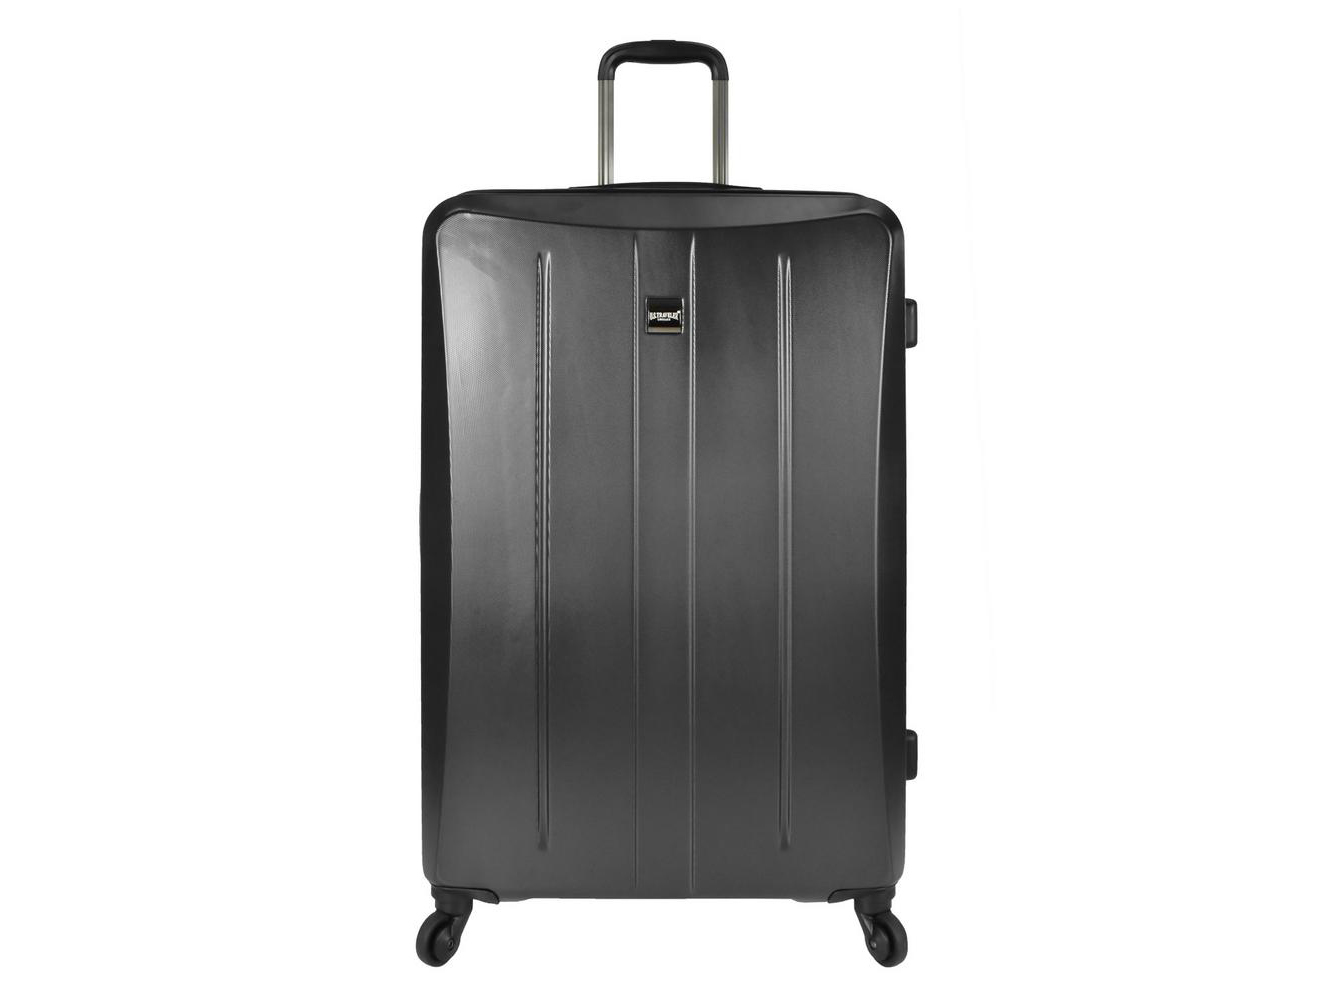 US traveler suitcase